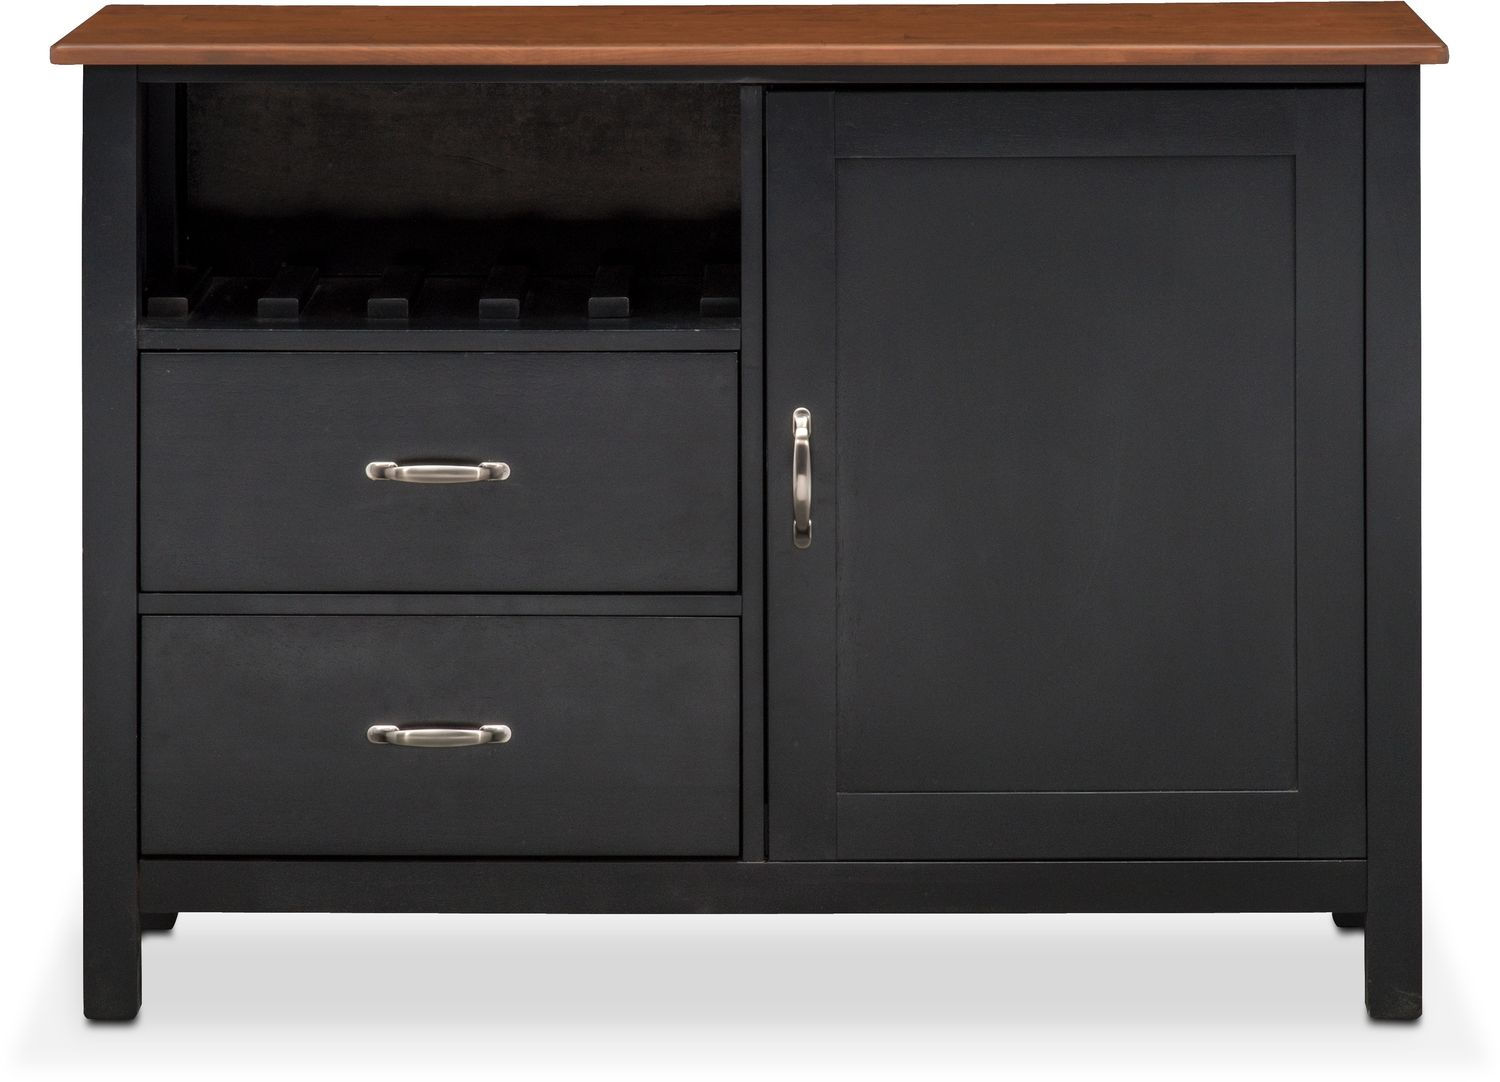 Nantucket Sideboard - Black and Cherry | Value City Furniture